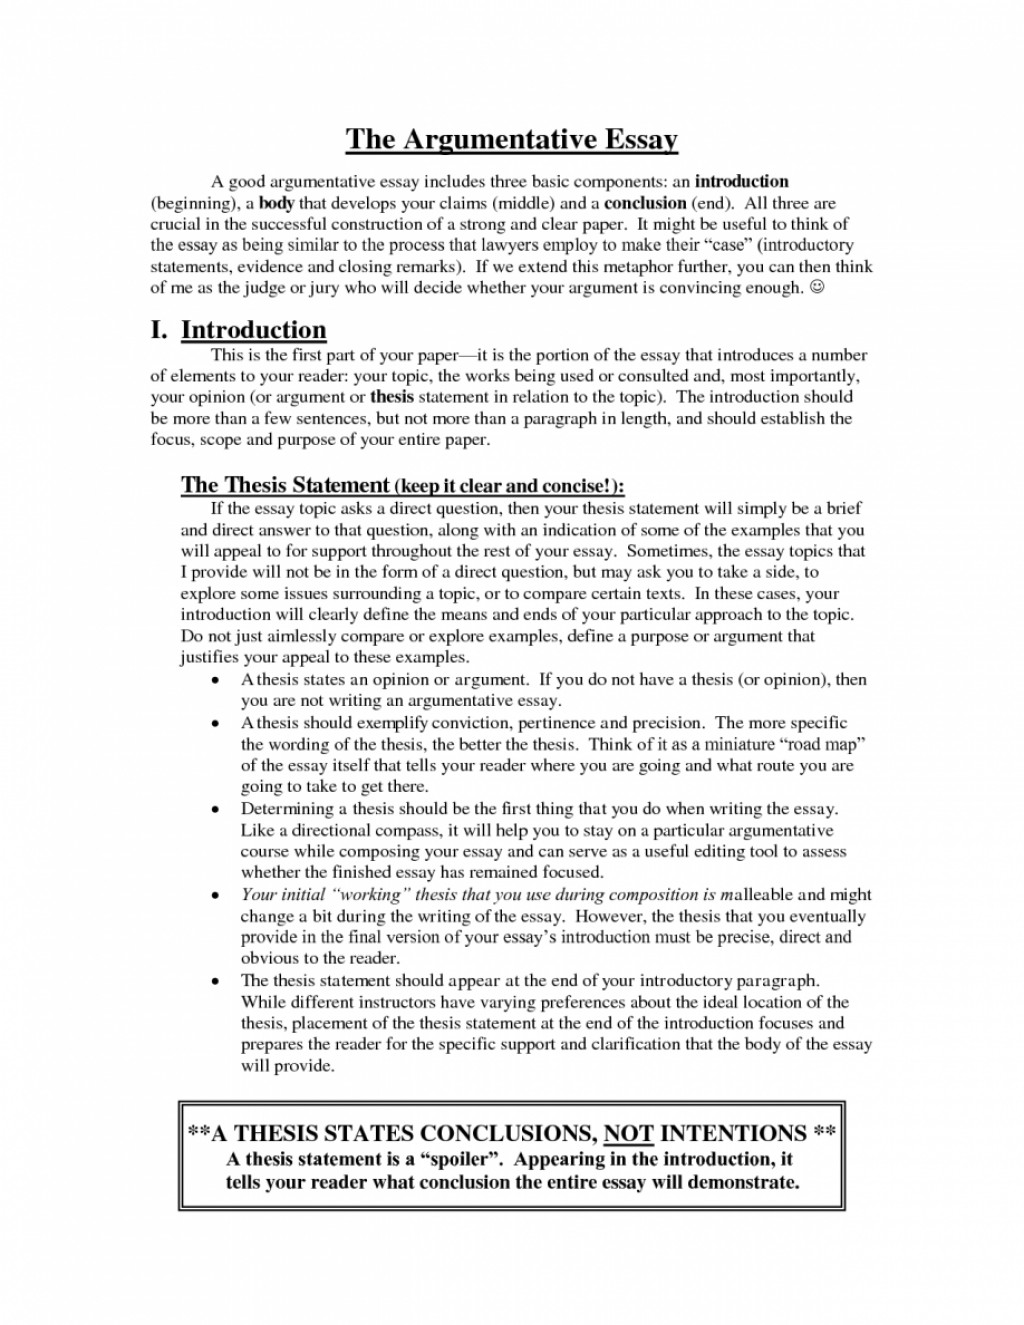 005 Argumentative Essay Introduction Examples Example Help Writing An College Good Persuasive Paragraph Image Ga Samples Personal Awesome Synthesis Large